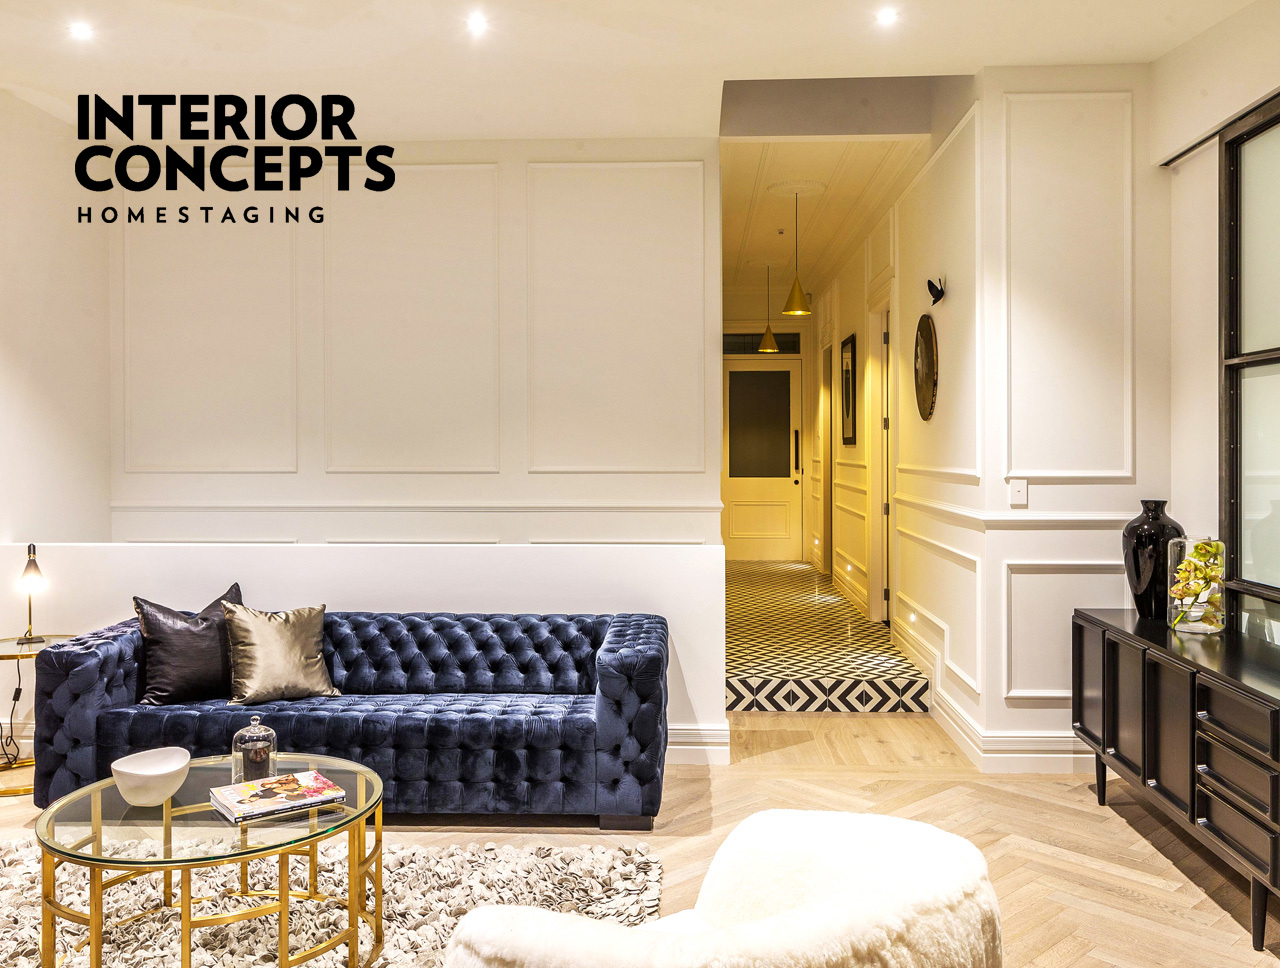 interior concepts home staging and interior design